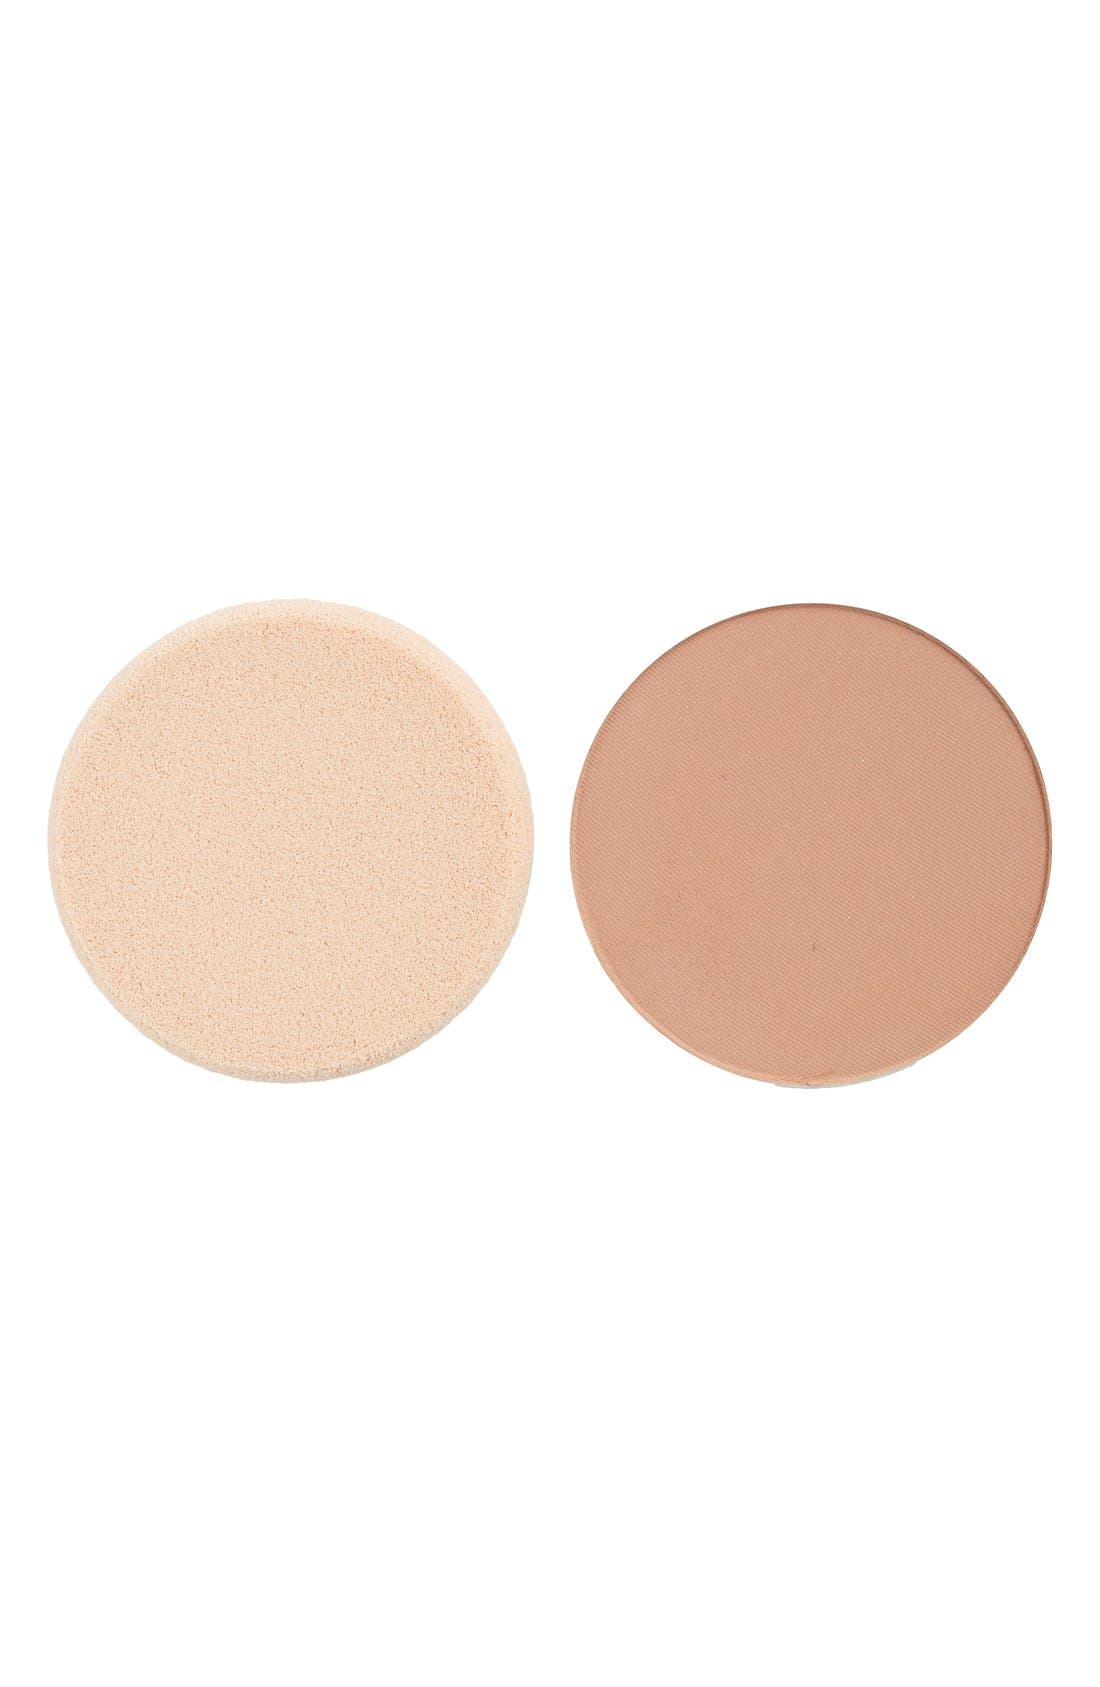 UV Sun Compact Foundation SPF 36 Refill,                             Main thumbnail 1, color,                             MEDIUM BEIGE SP60